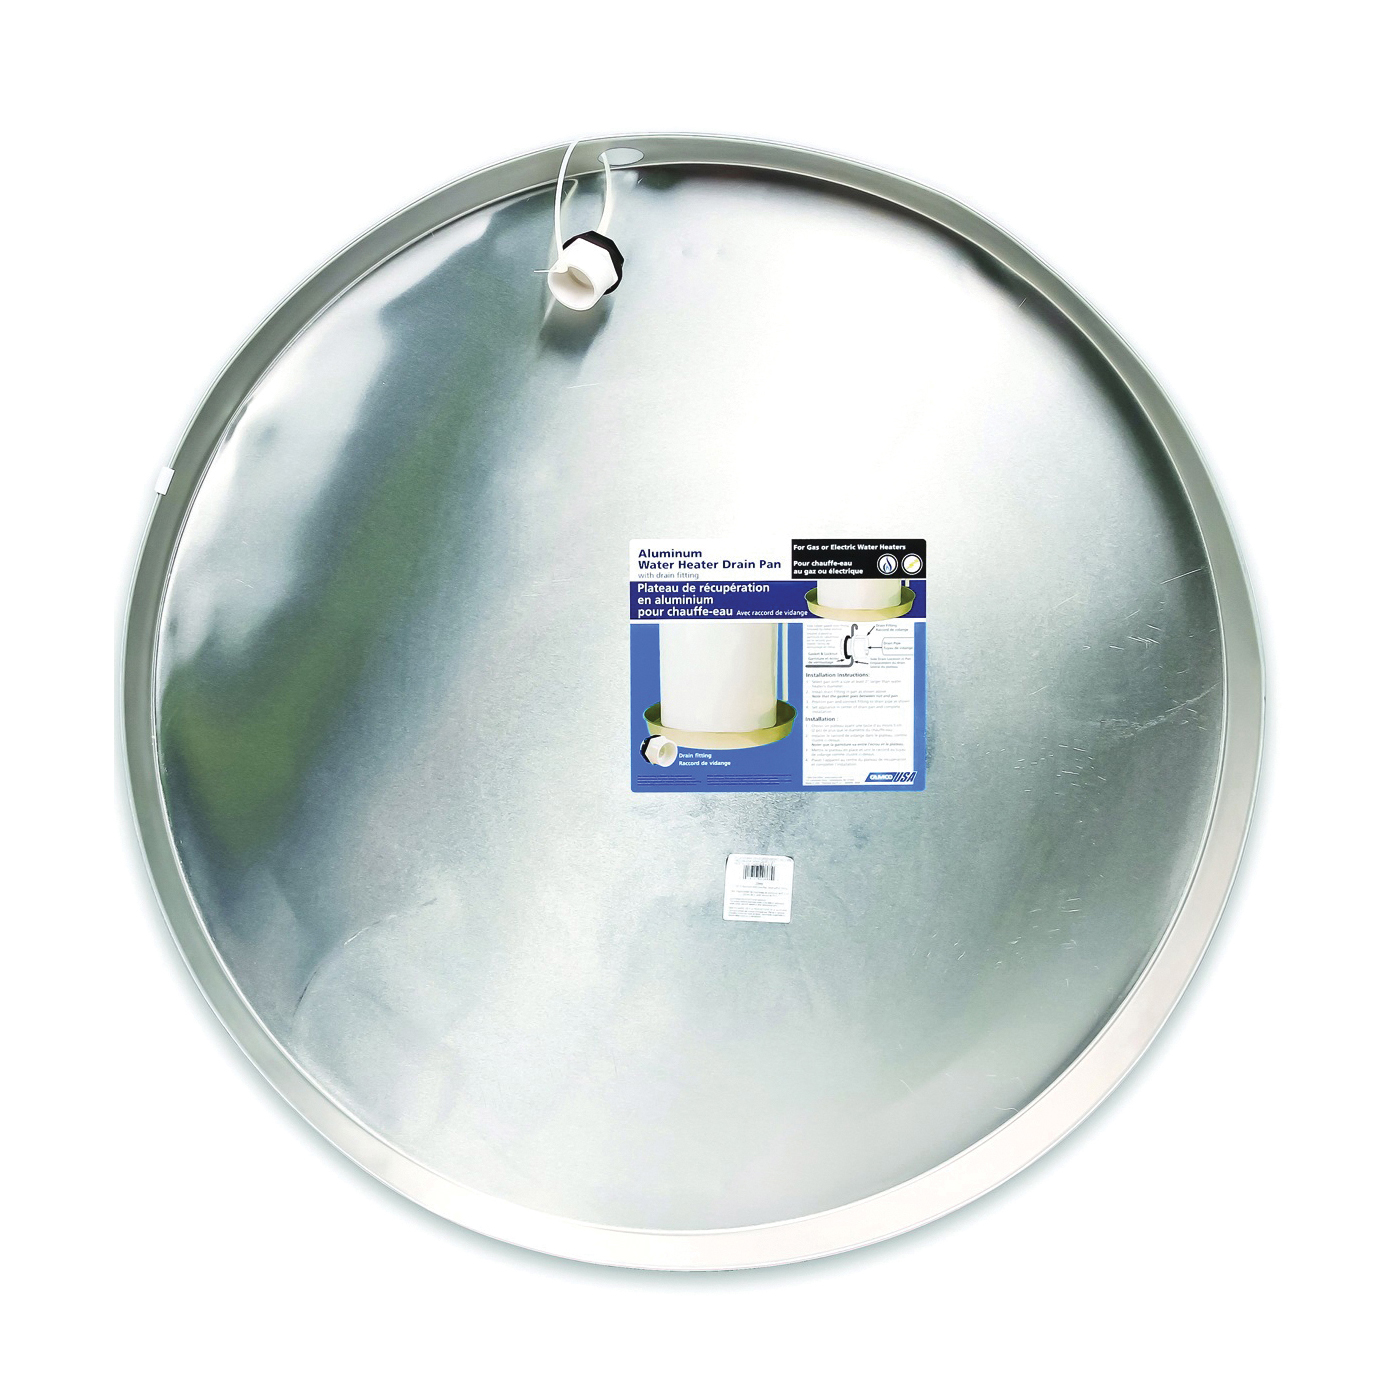 Picture of CAMCO 20868 Water Heater Drain Pan, Recyclable, Aluminum, For: Gas or Electric Water Heaters